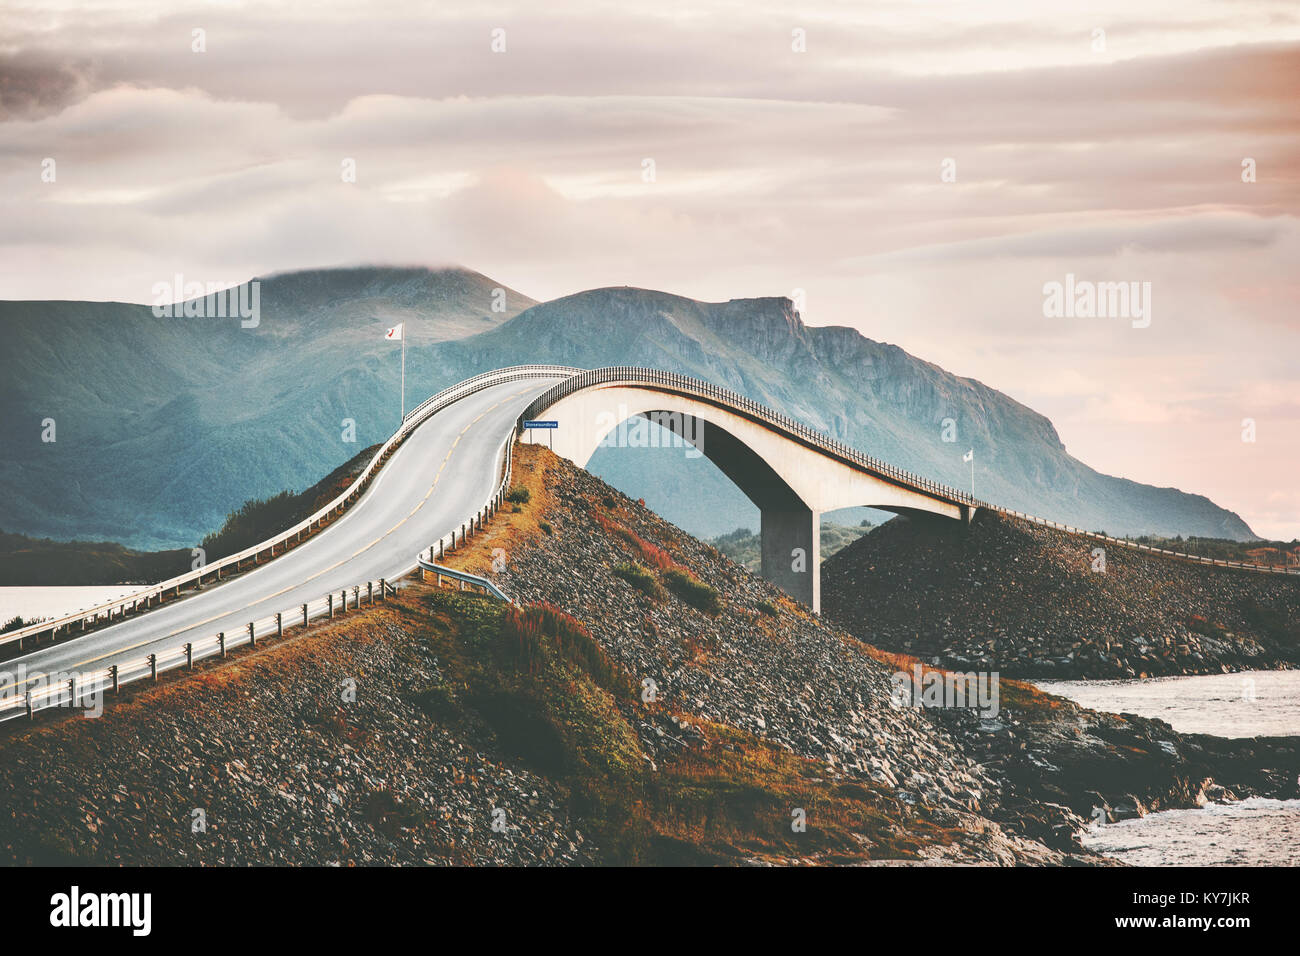 Atlantic road in Norway Storseisundet bridge over ocean scandinavian travel landmarks - Stock Image